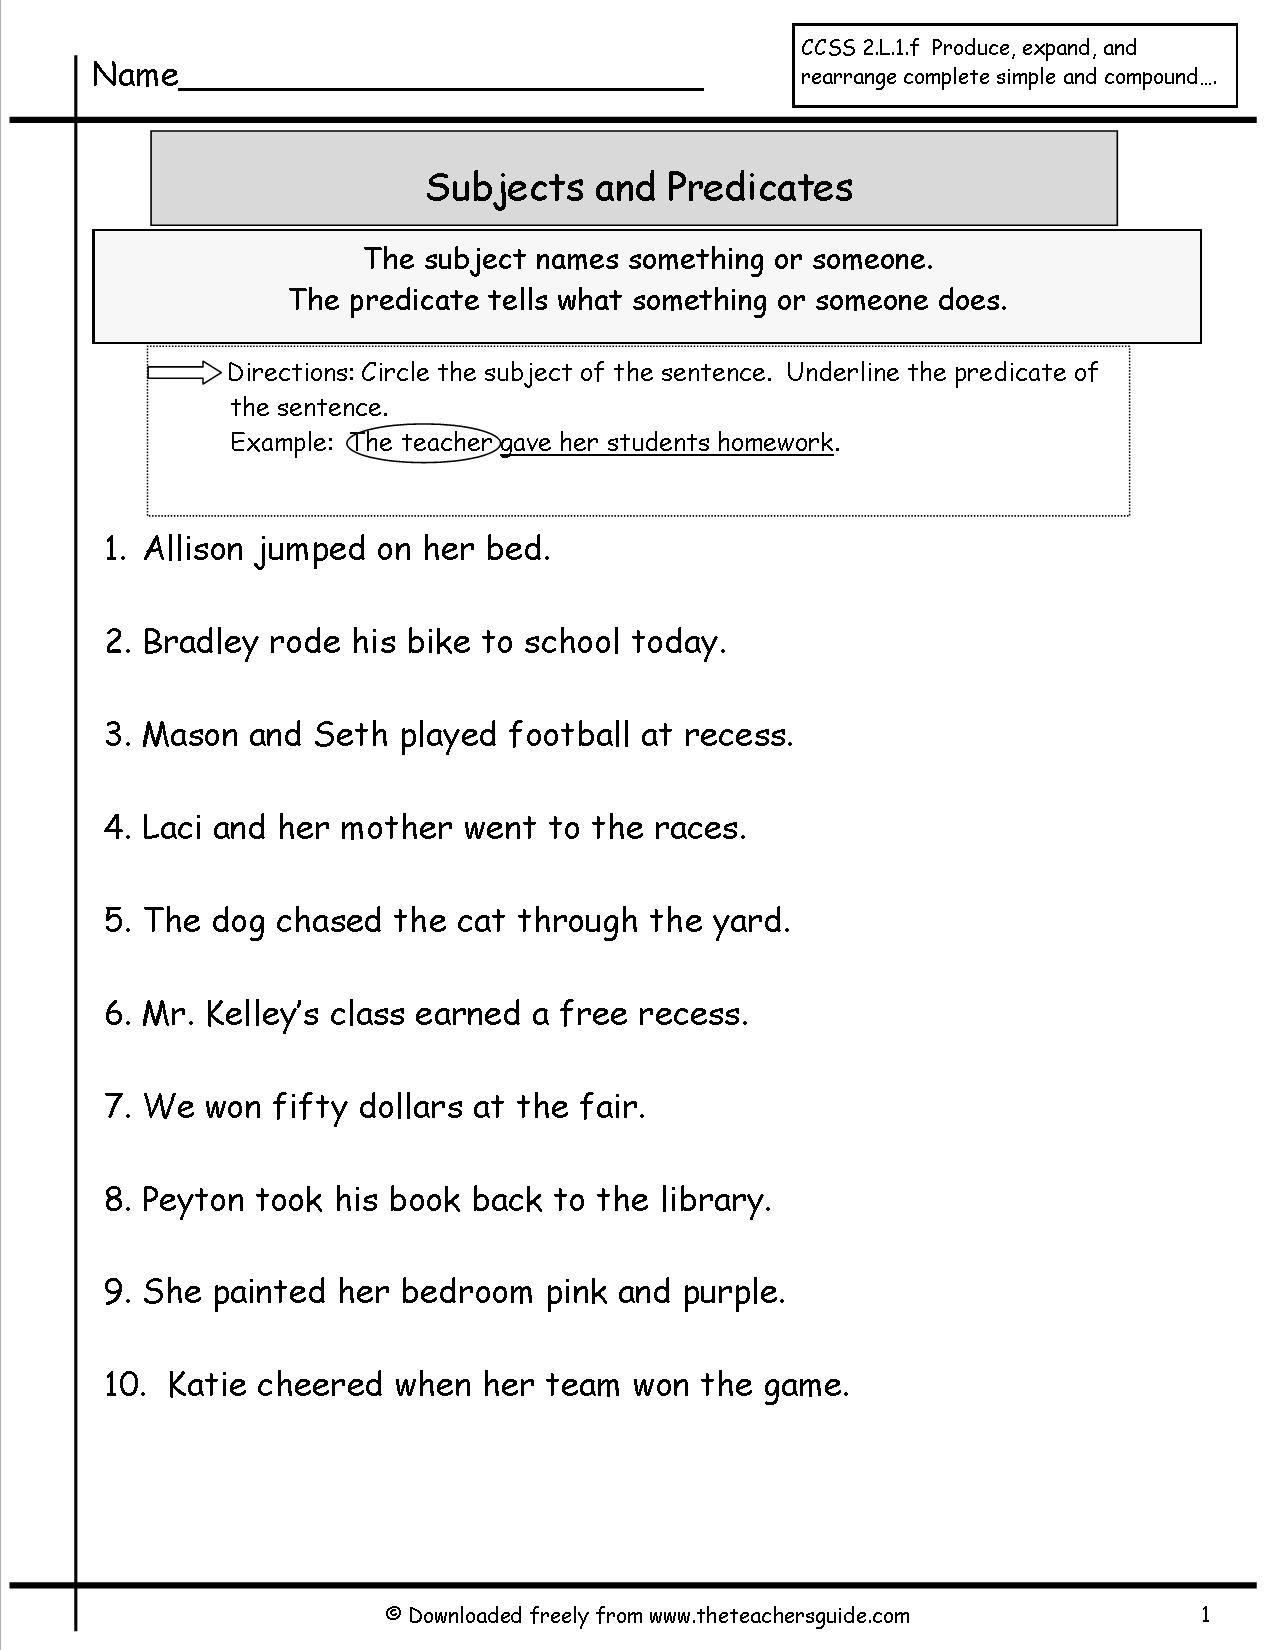 Subject And Predicate Worksheet More